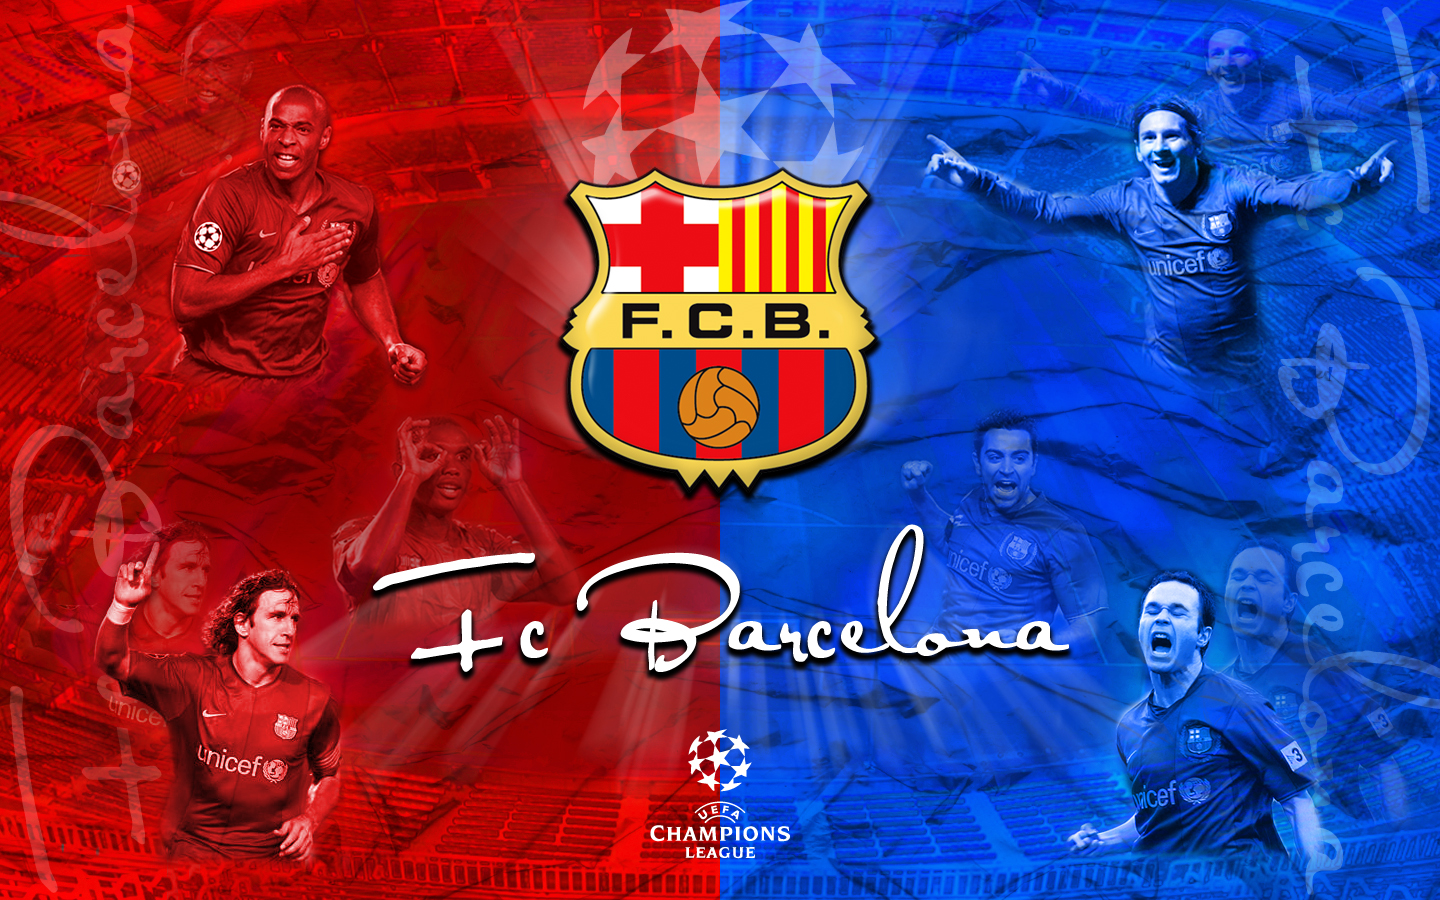 Fondos De Pantalla Del Fútbol Club Barcelona Wallpapers: World Sports Hd Wallpapers: FC Barcelona Hd Wallpapers